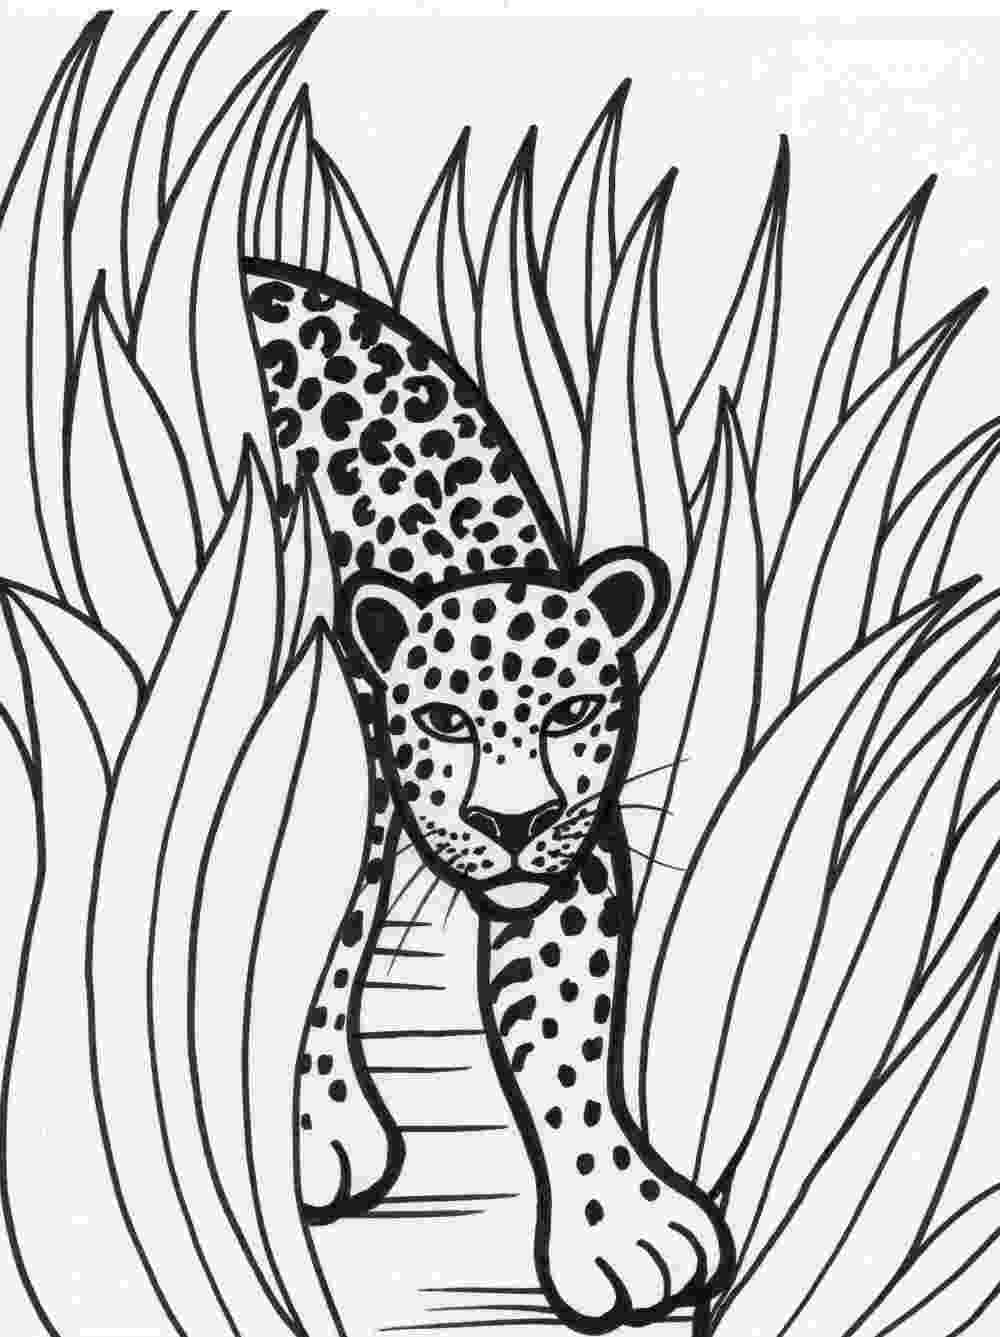 colouring pictures of extinct animals rainforest animals coloring pages we respect your email colouring pictures extinct animals of